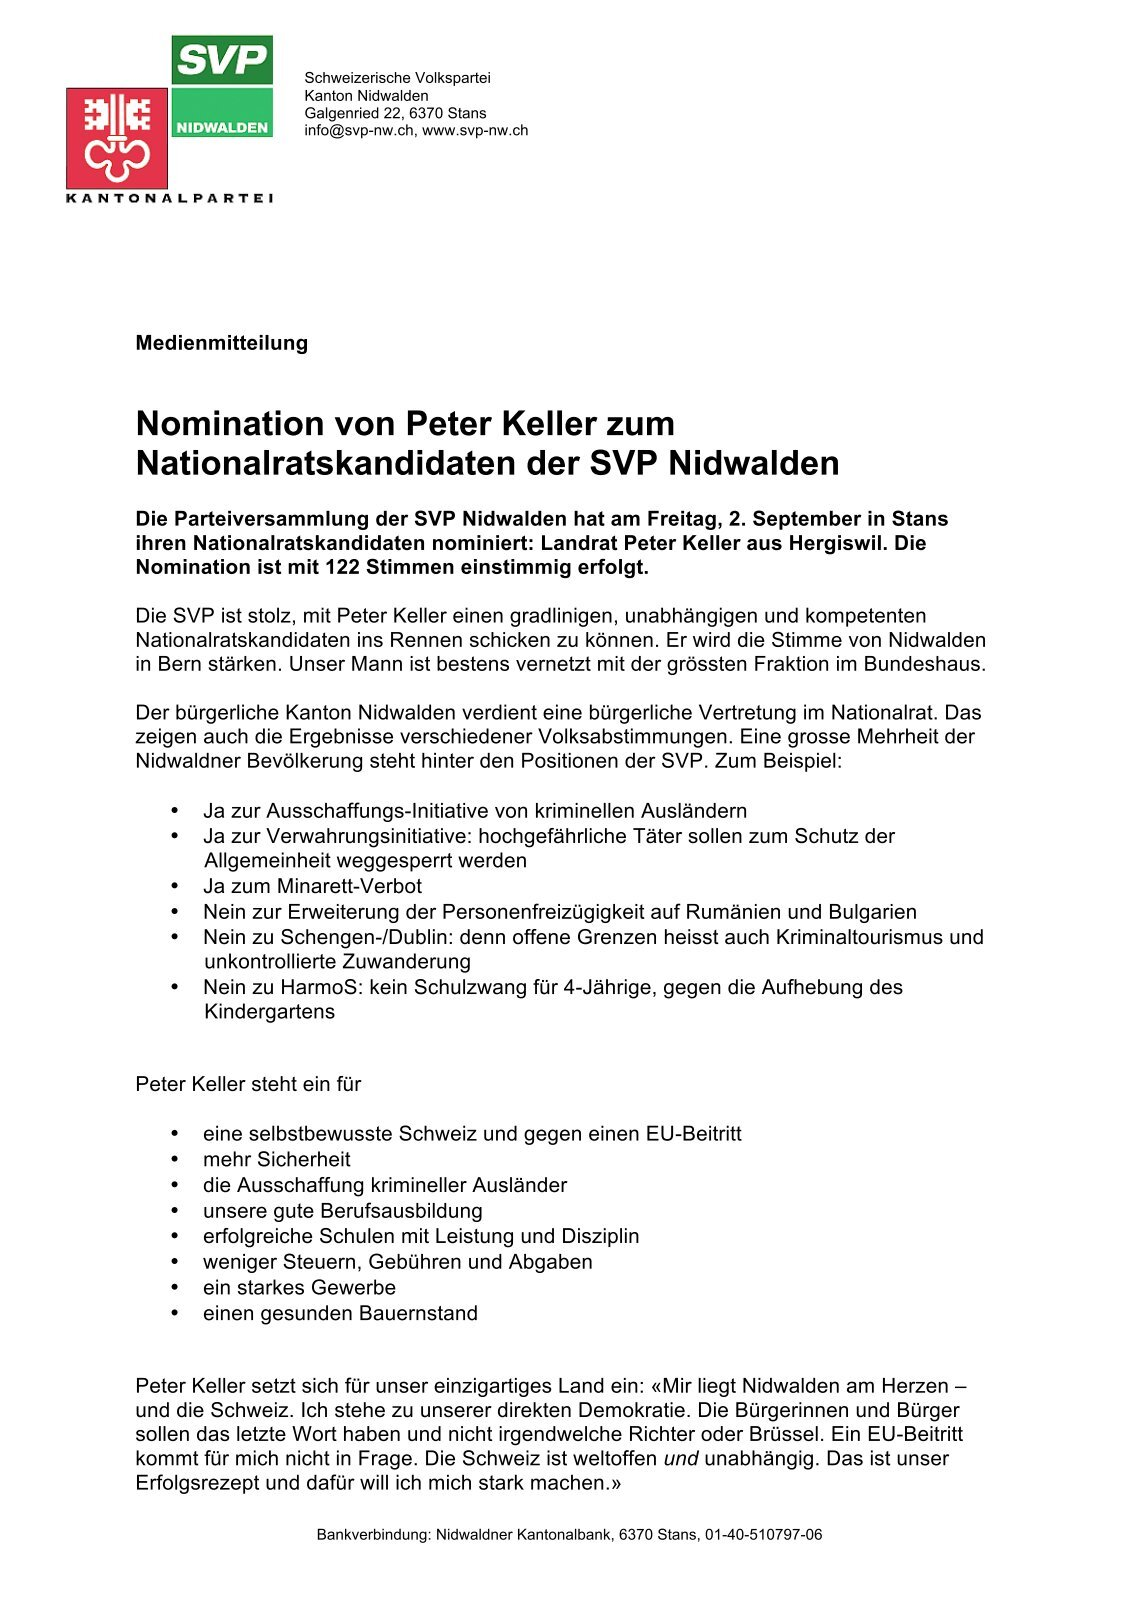 4 free Magazines from SVP.NW.CH